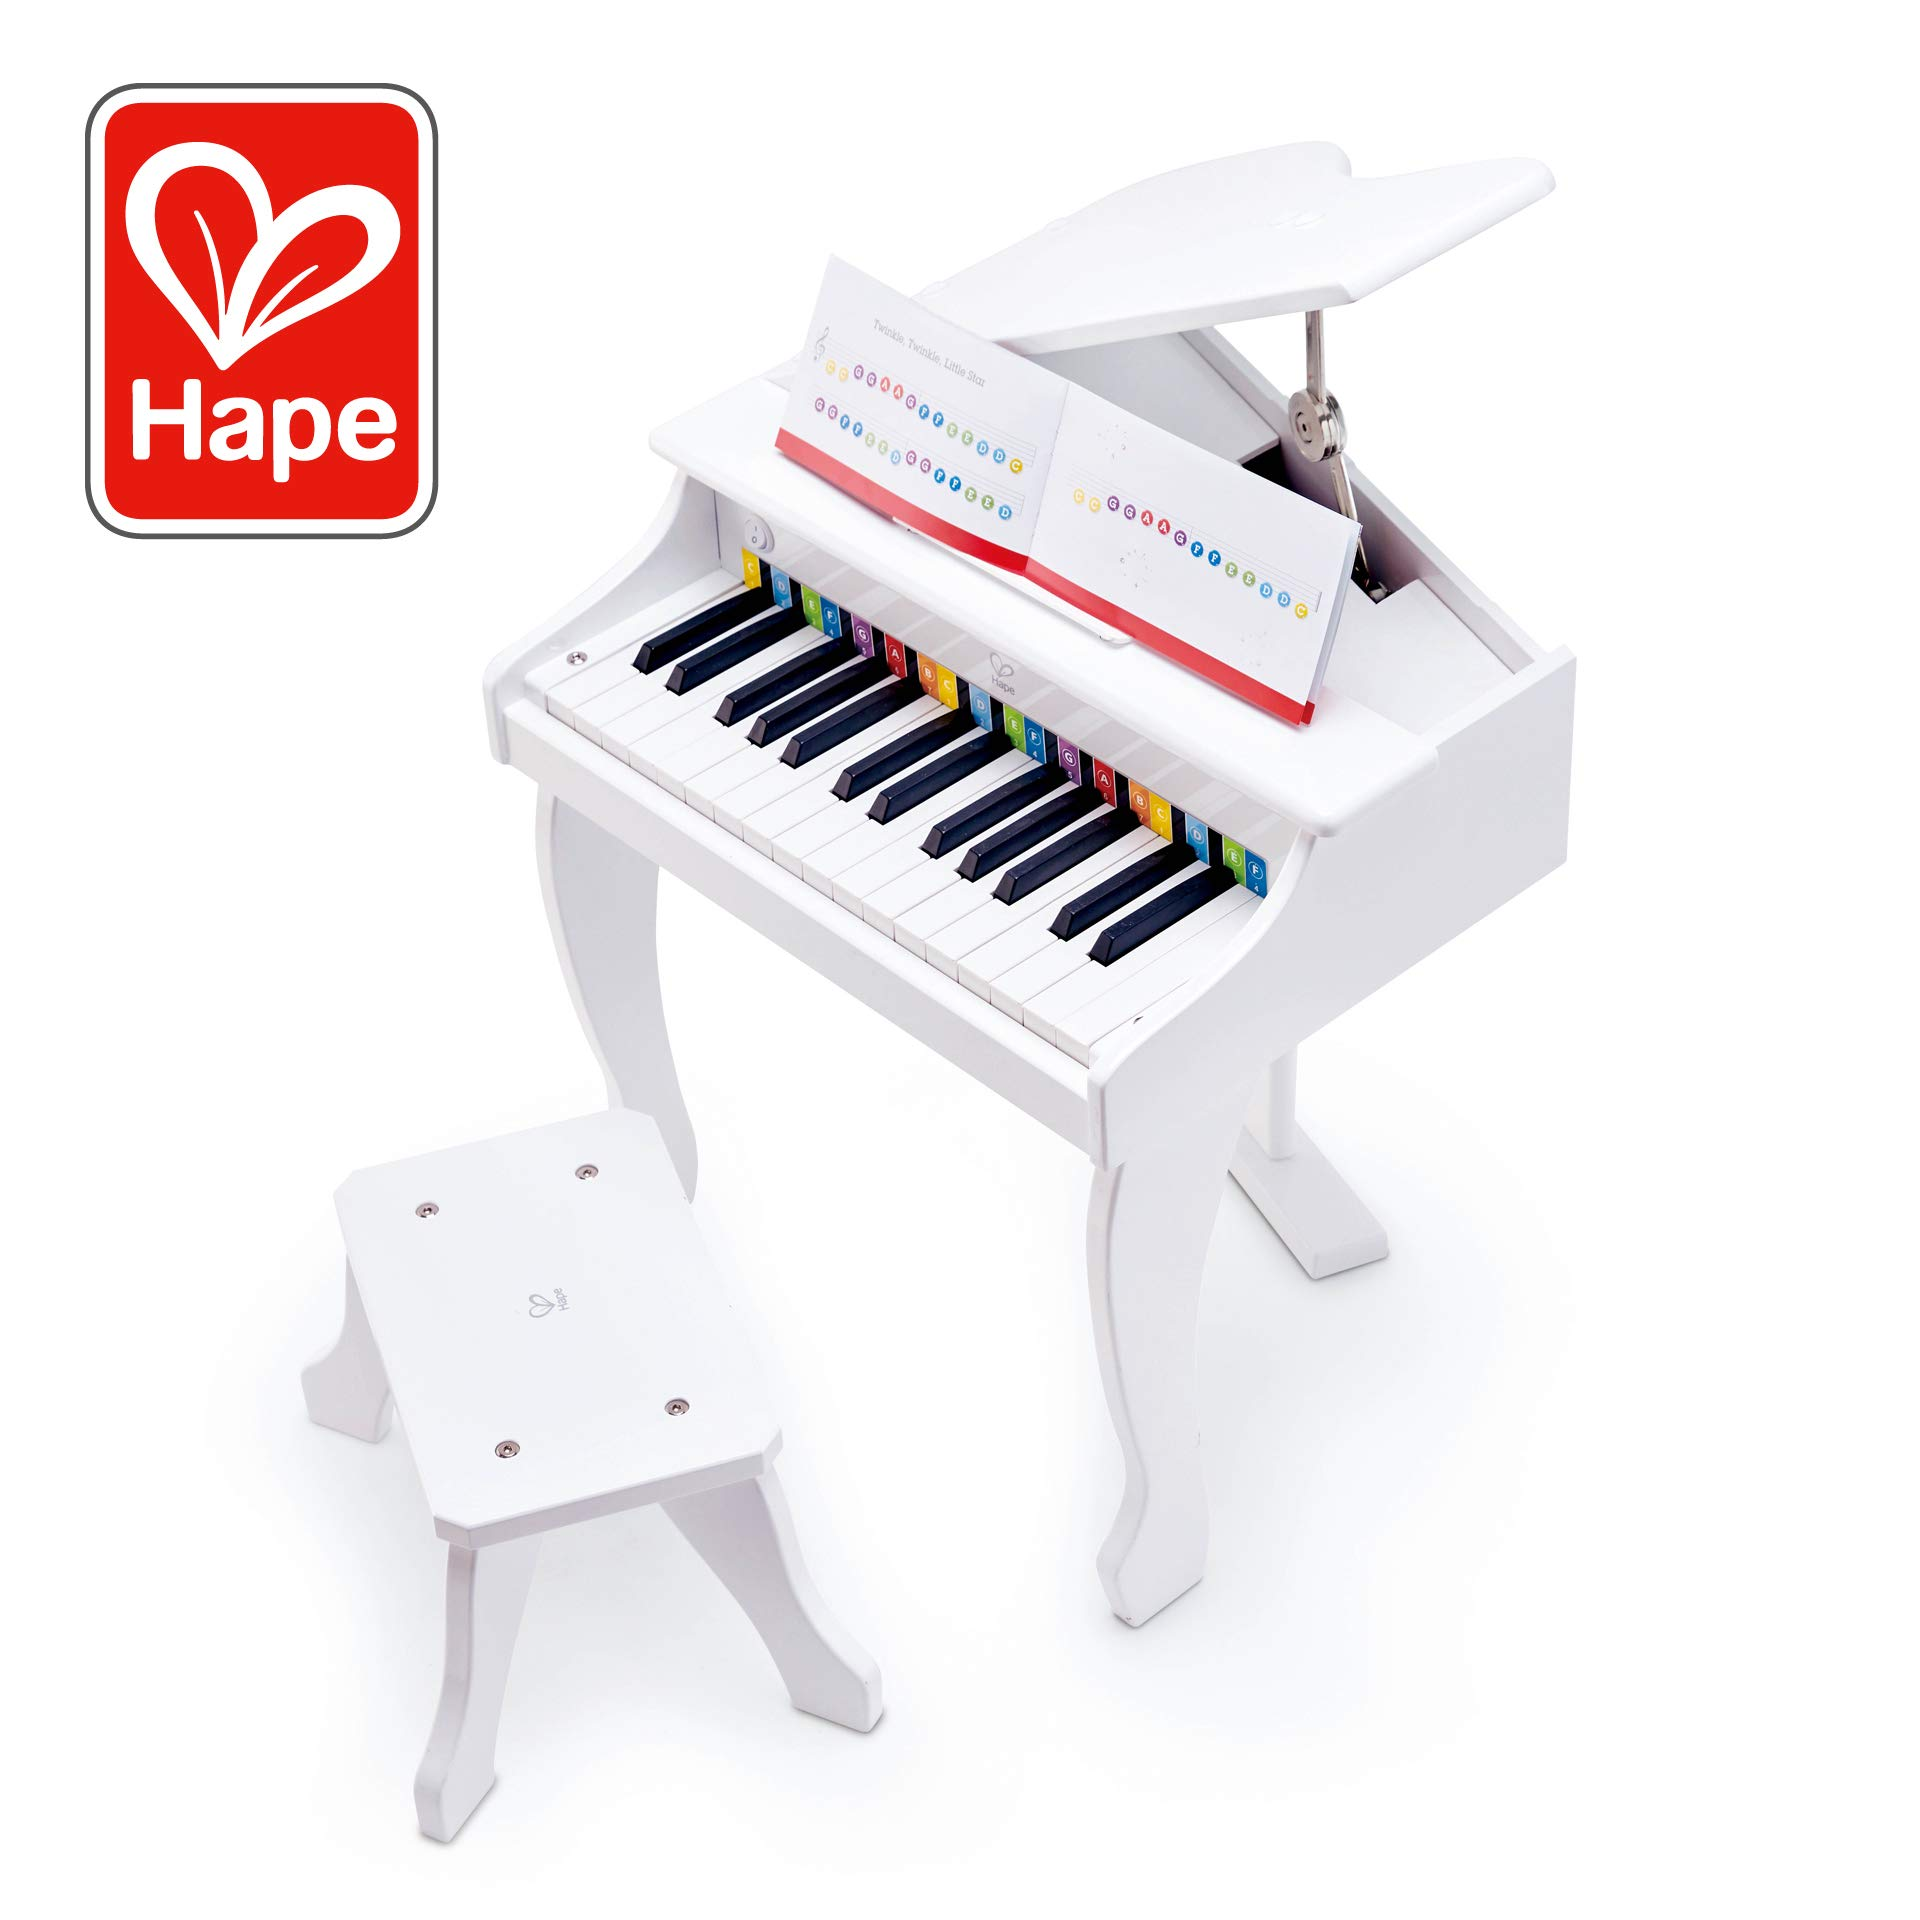 Hape Deluxe White Grand Piano | Thirty Key Piano Toy with Stool, Electronic Keyboard Musical Toy Set for Kids 3 Years+ by Hape